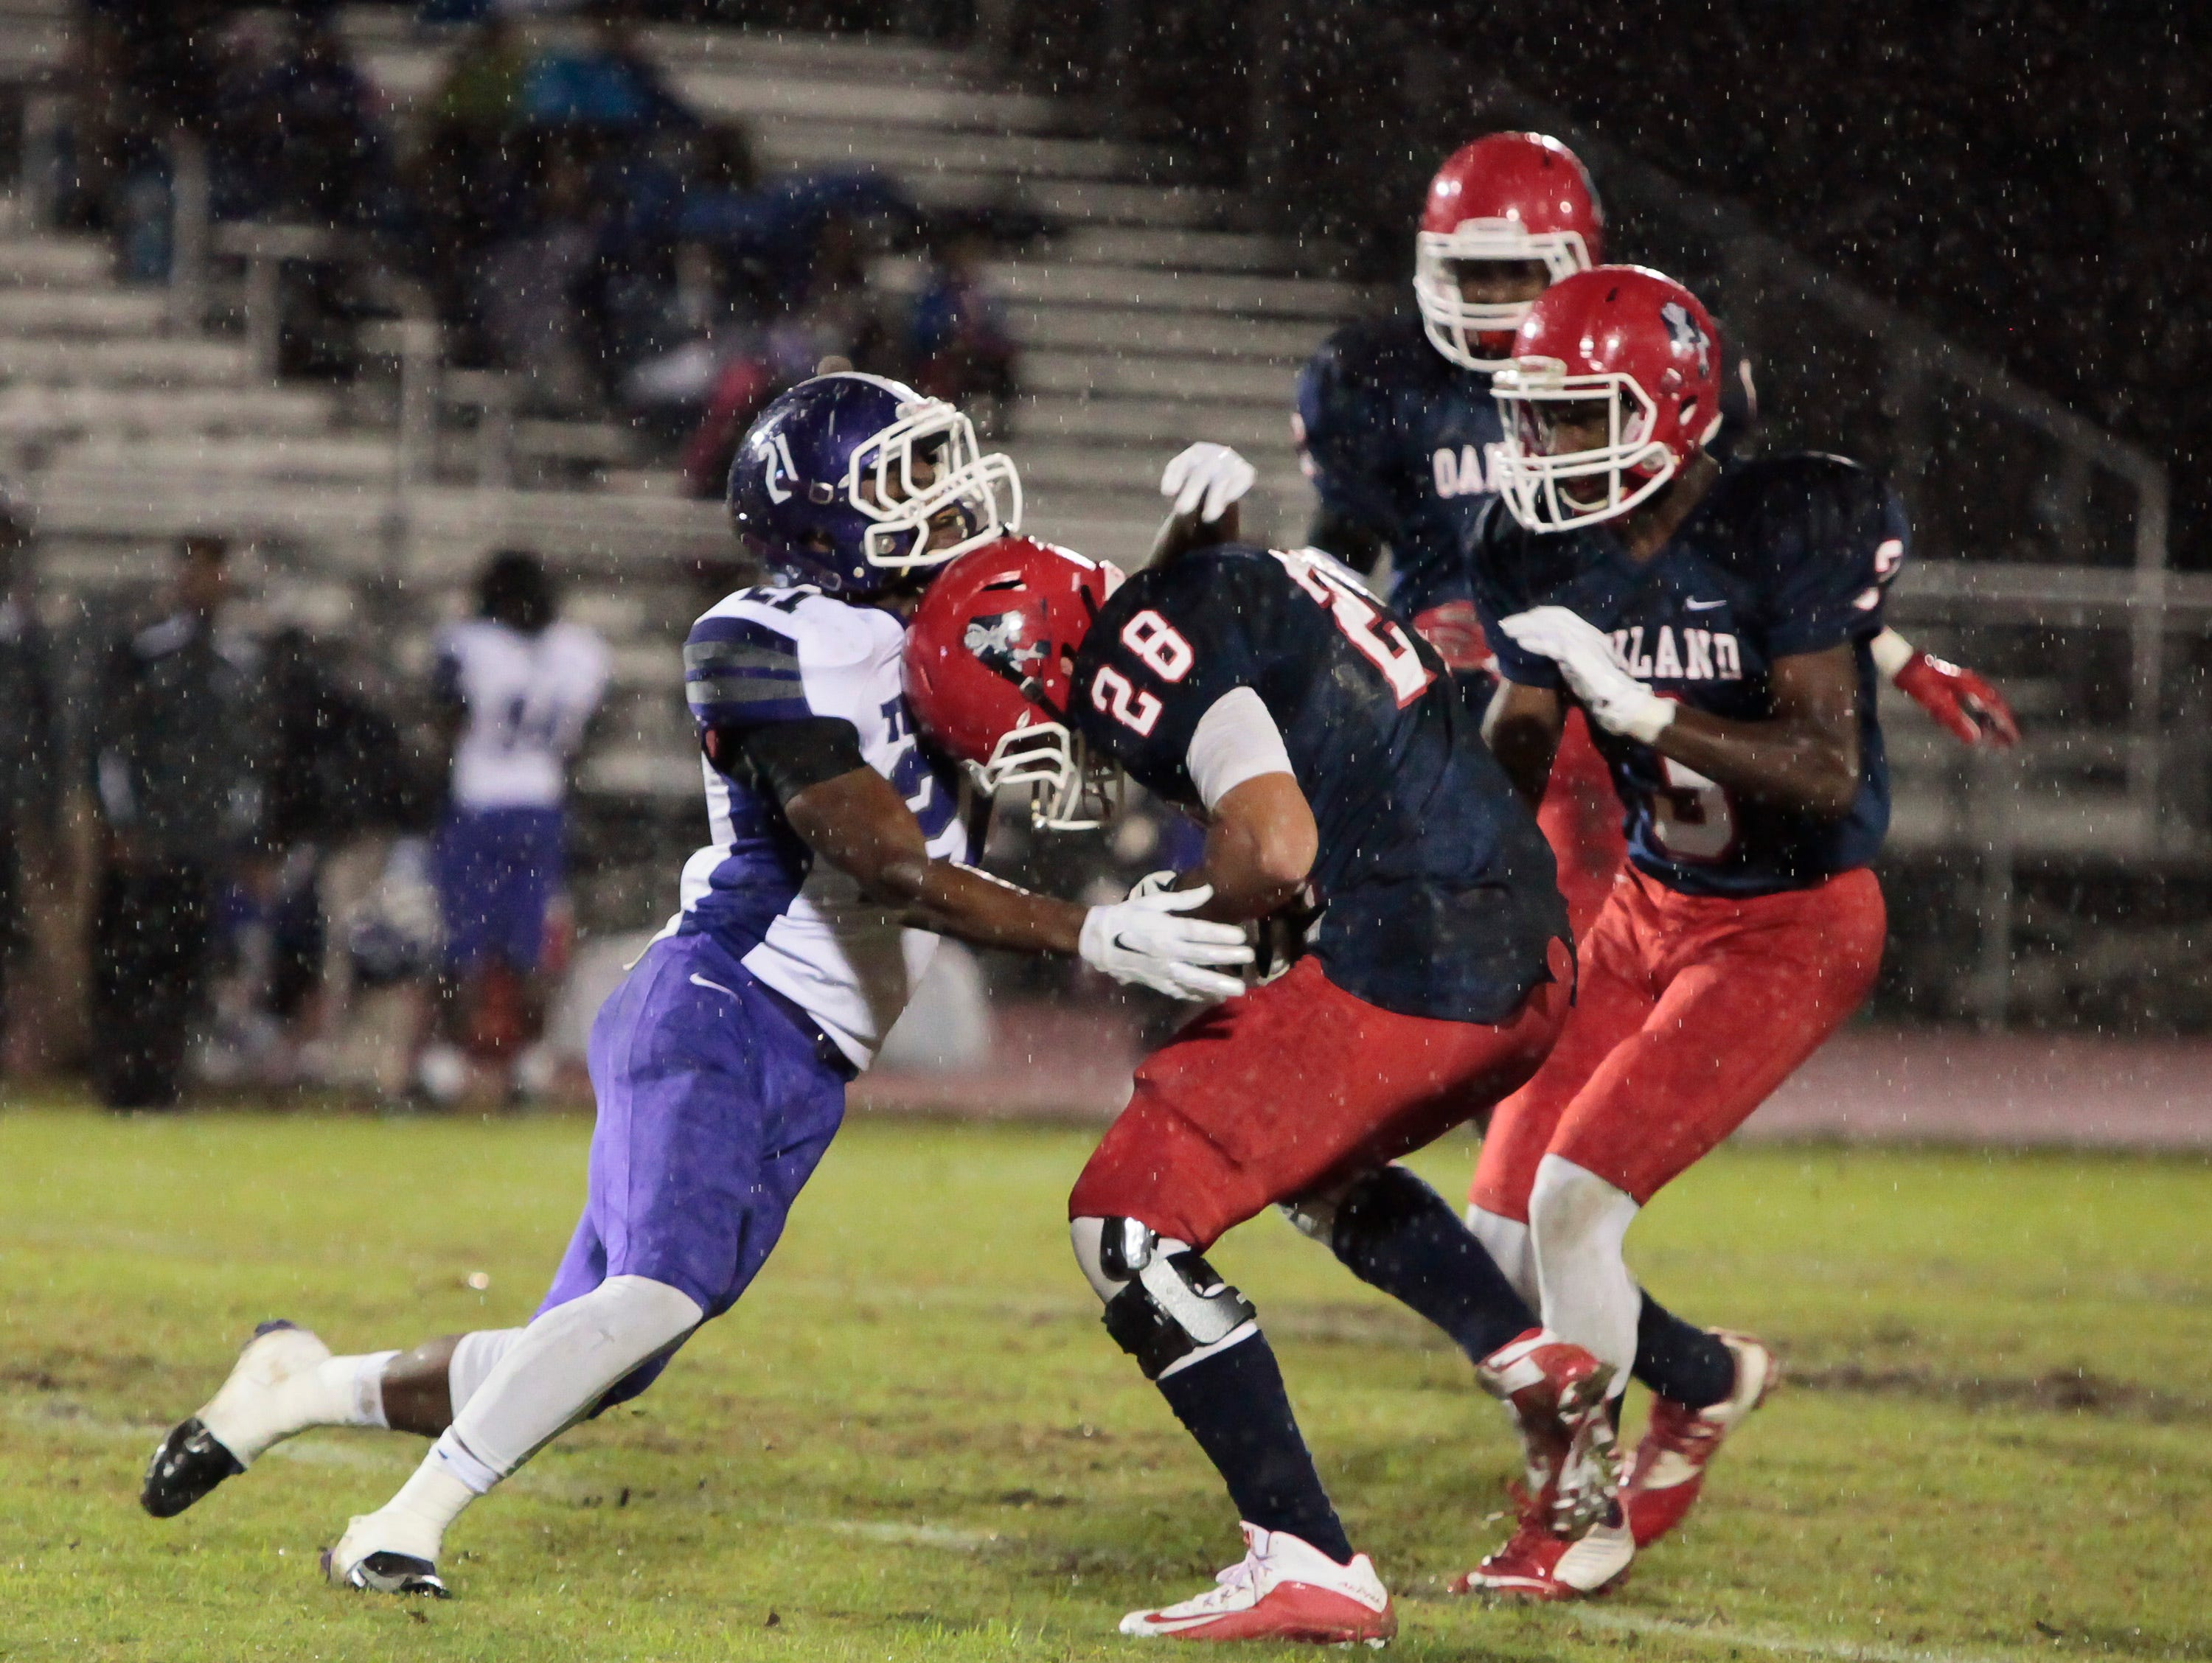 Jackson Cauthen (28) pulls in an interception. Cauthen has 102 tackles this season.